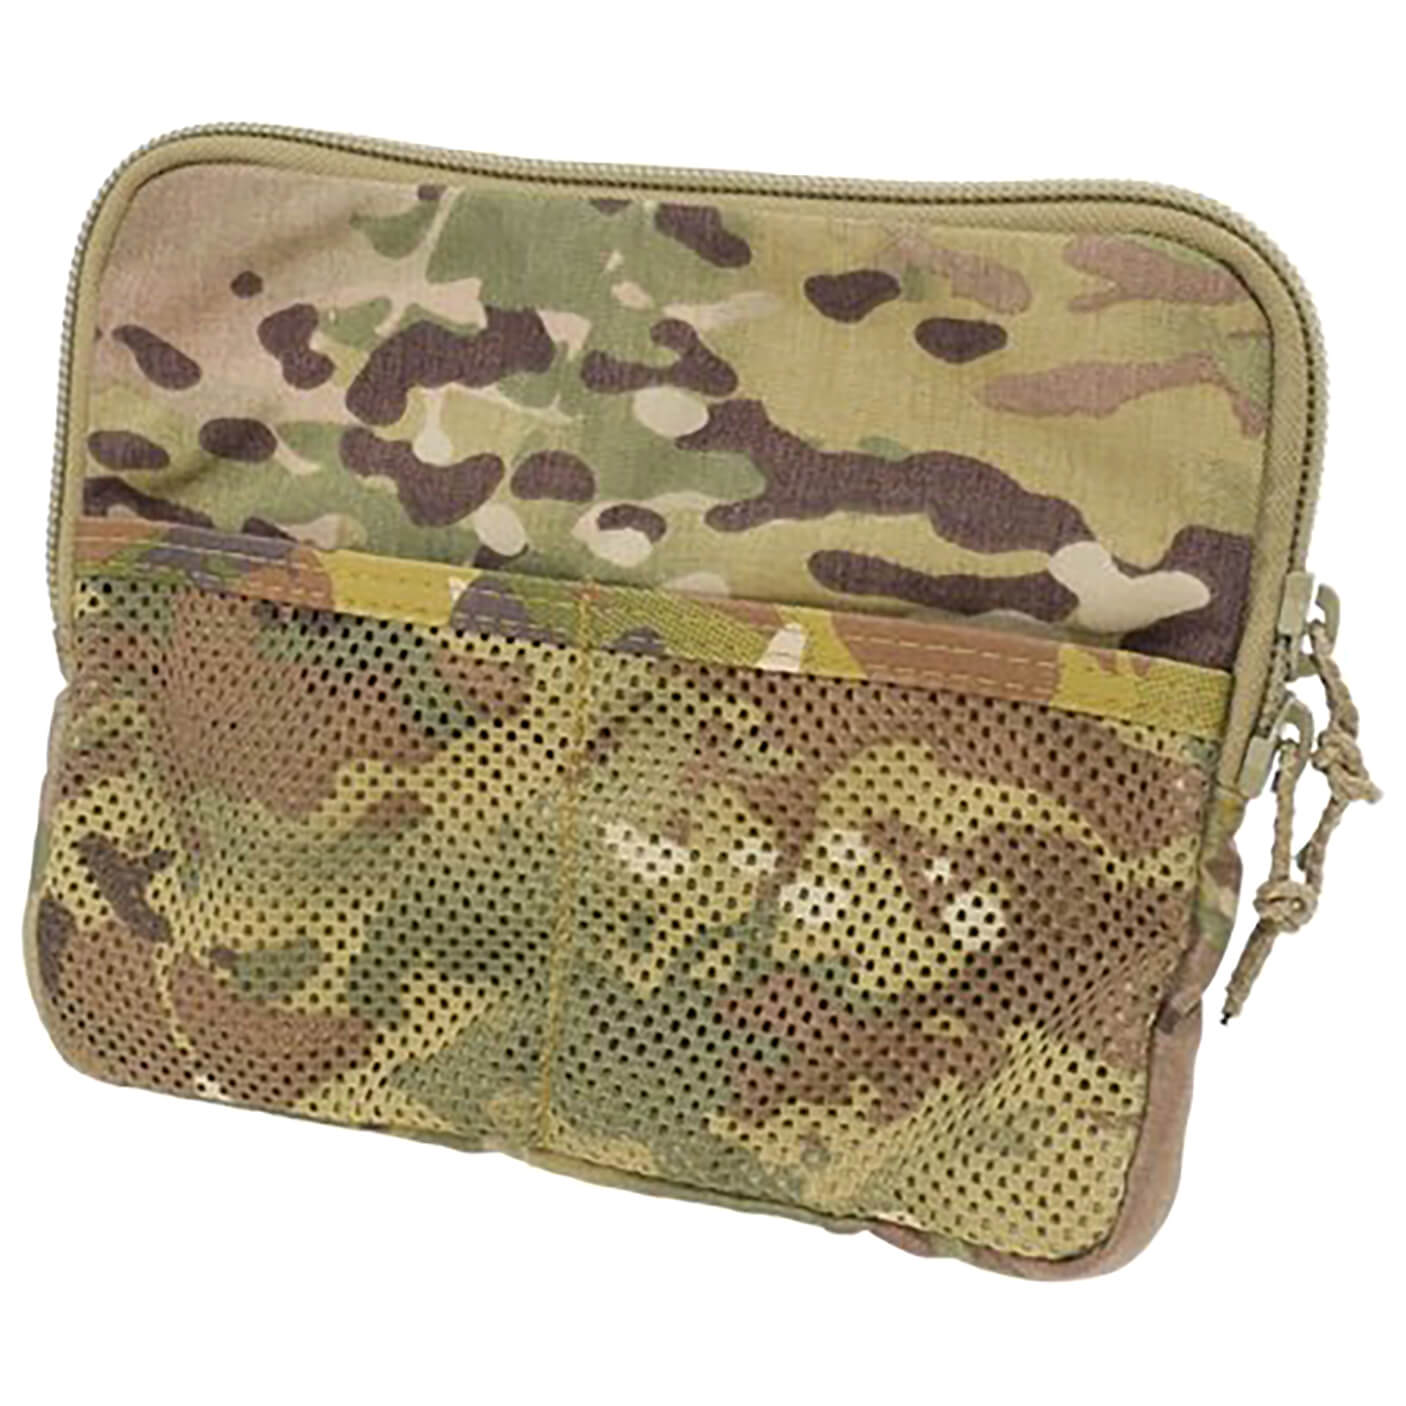 Picture for category Organize Pouches